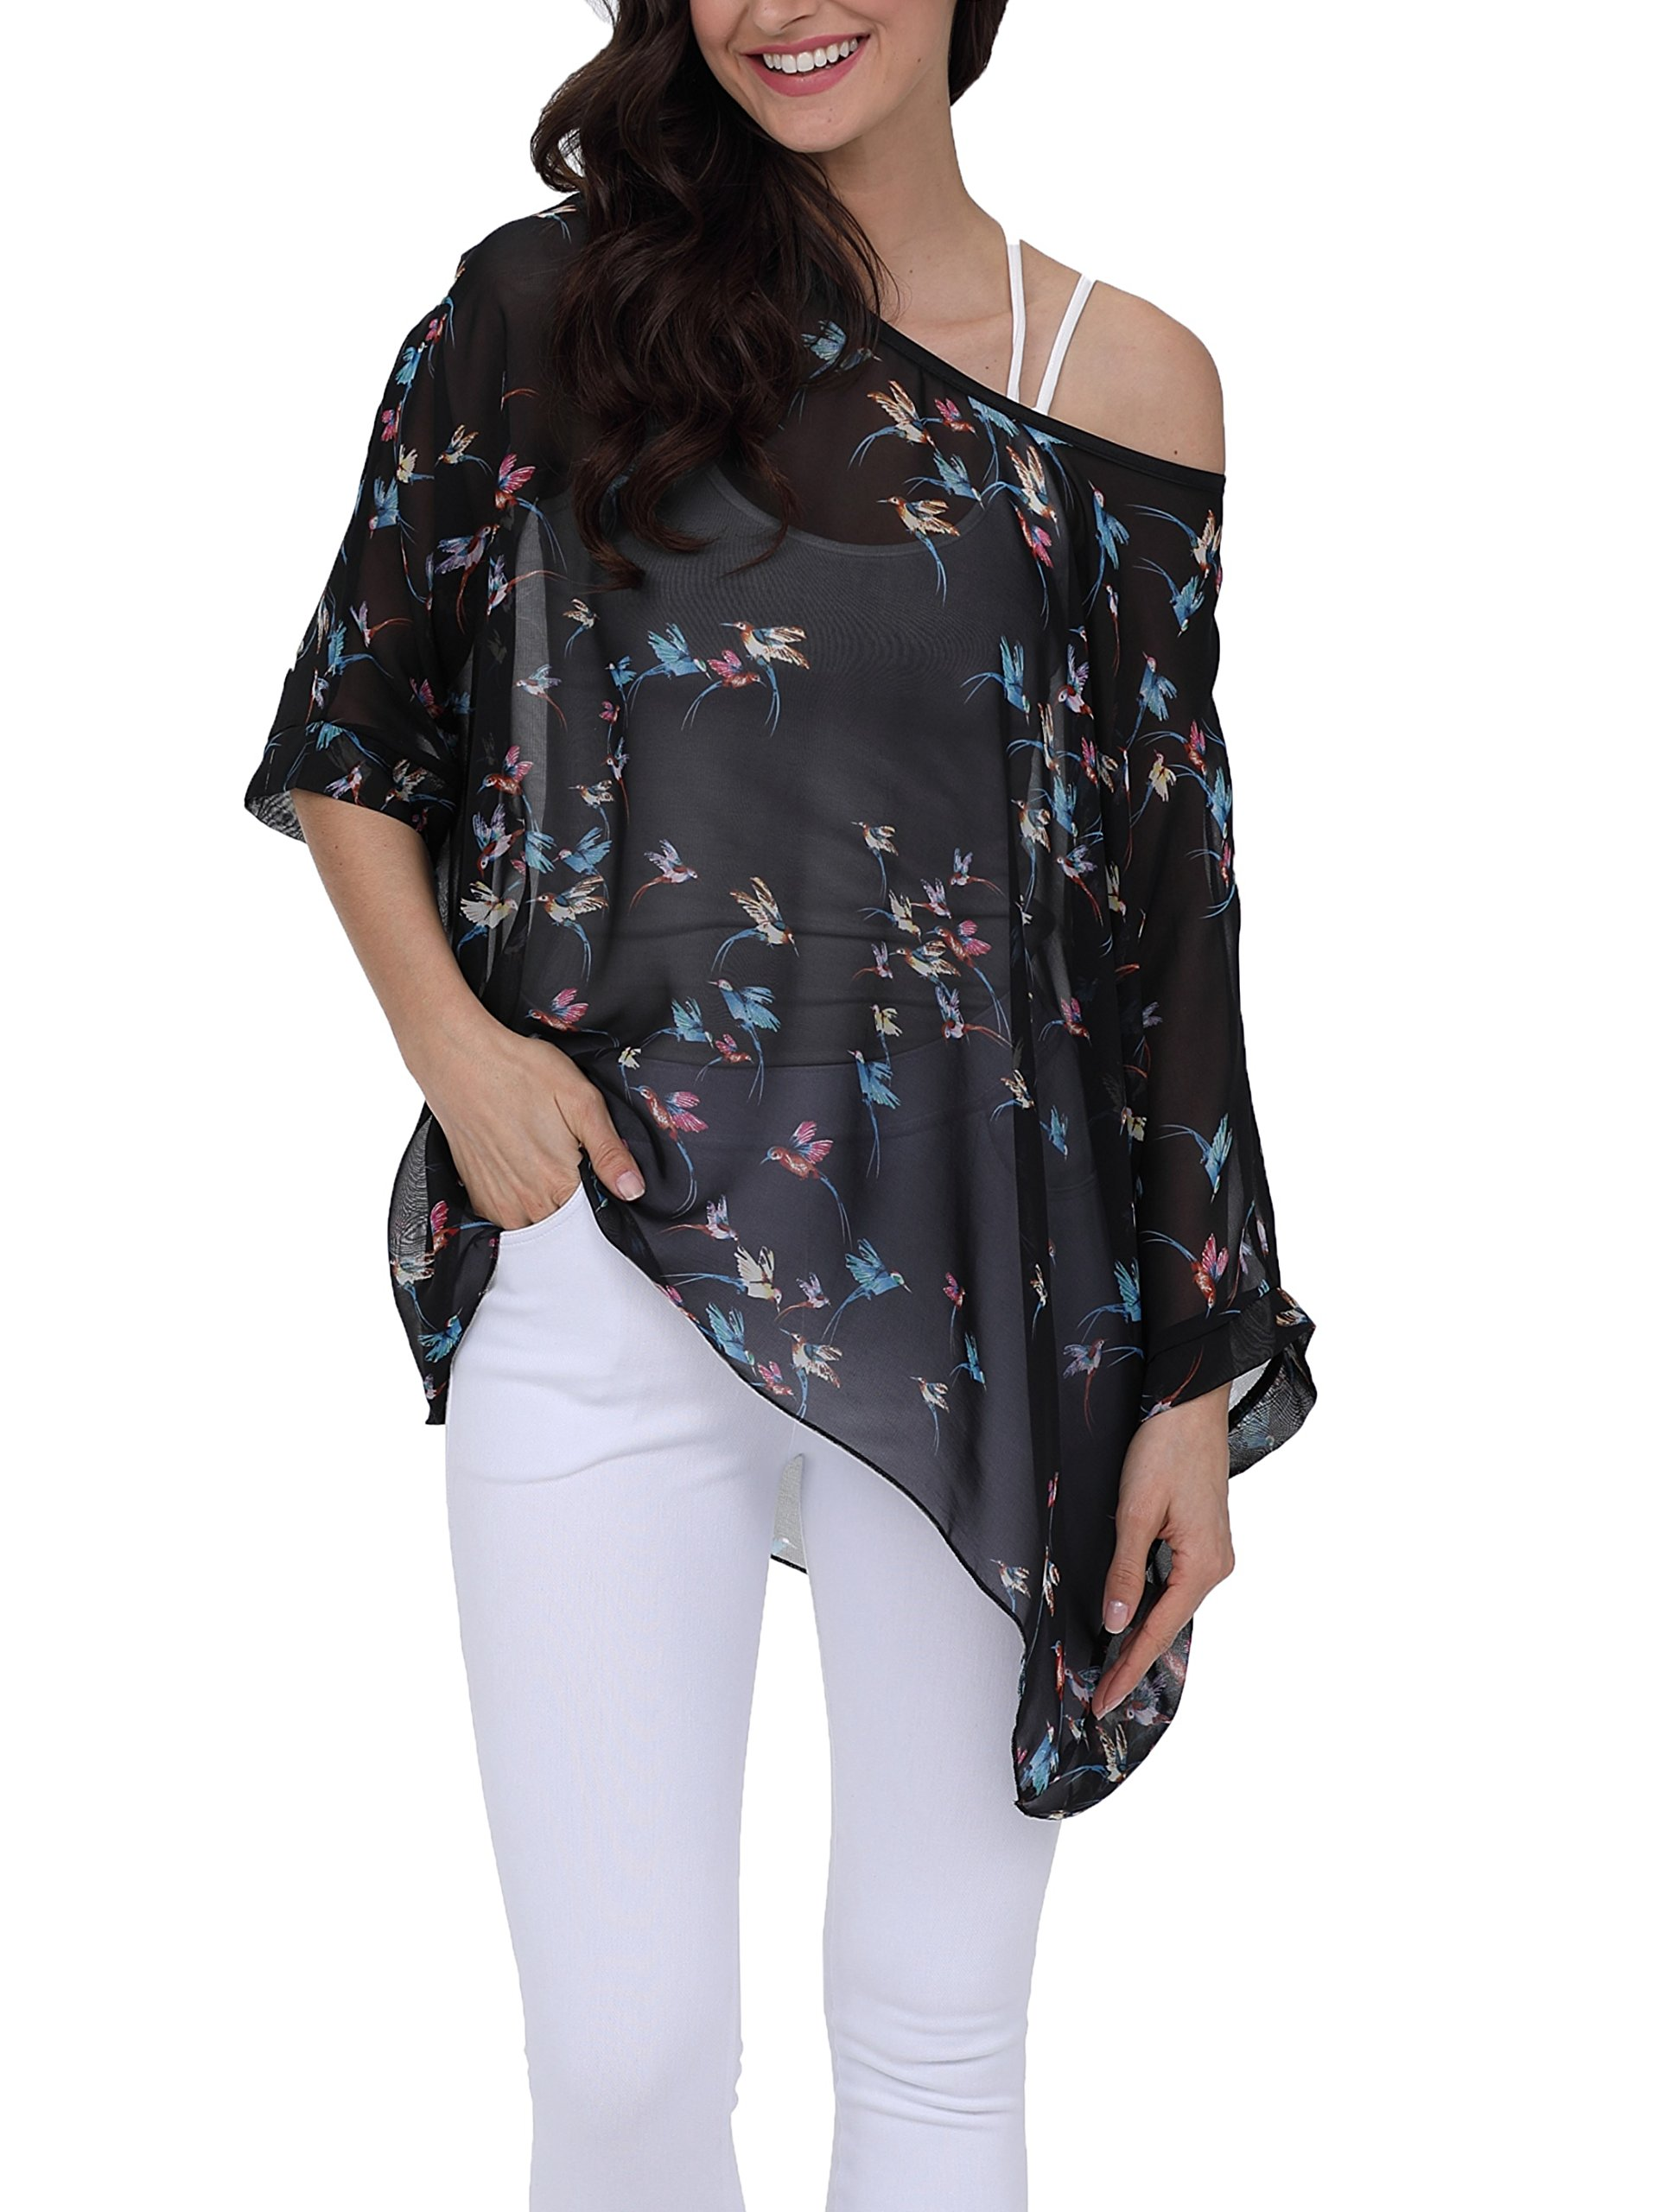 iNewbetter Womens Floral Batwing Sleeve Chiffon Beach Loose Blouse Tunic Tops PB299